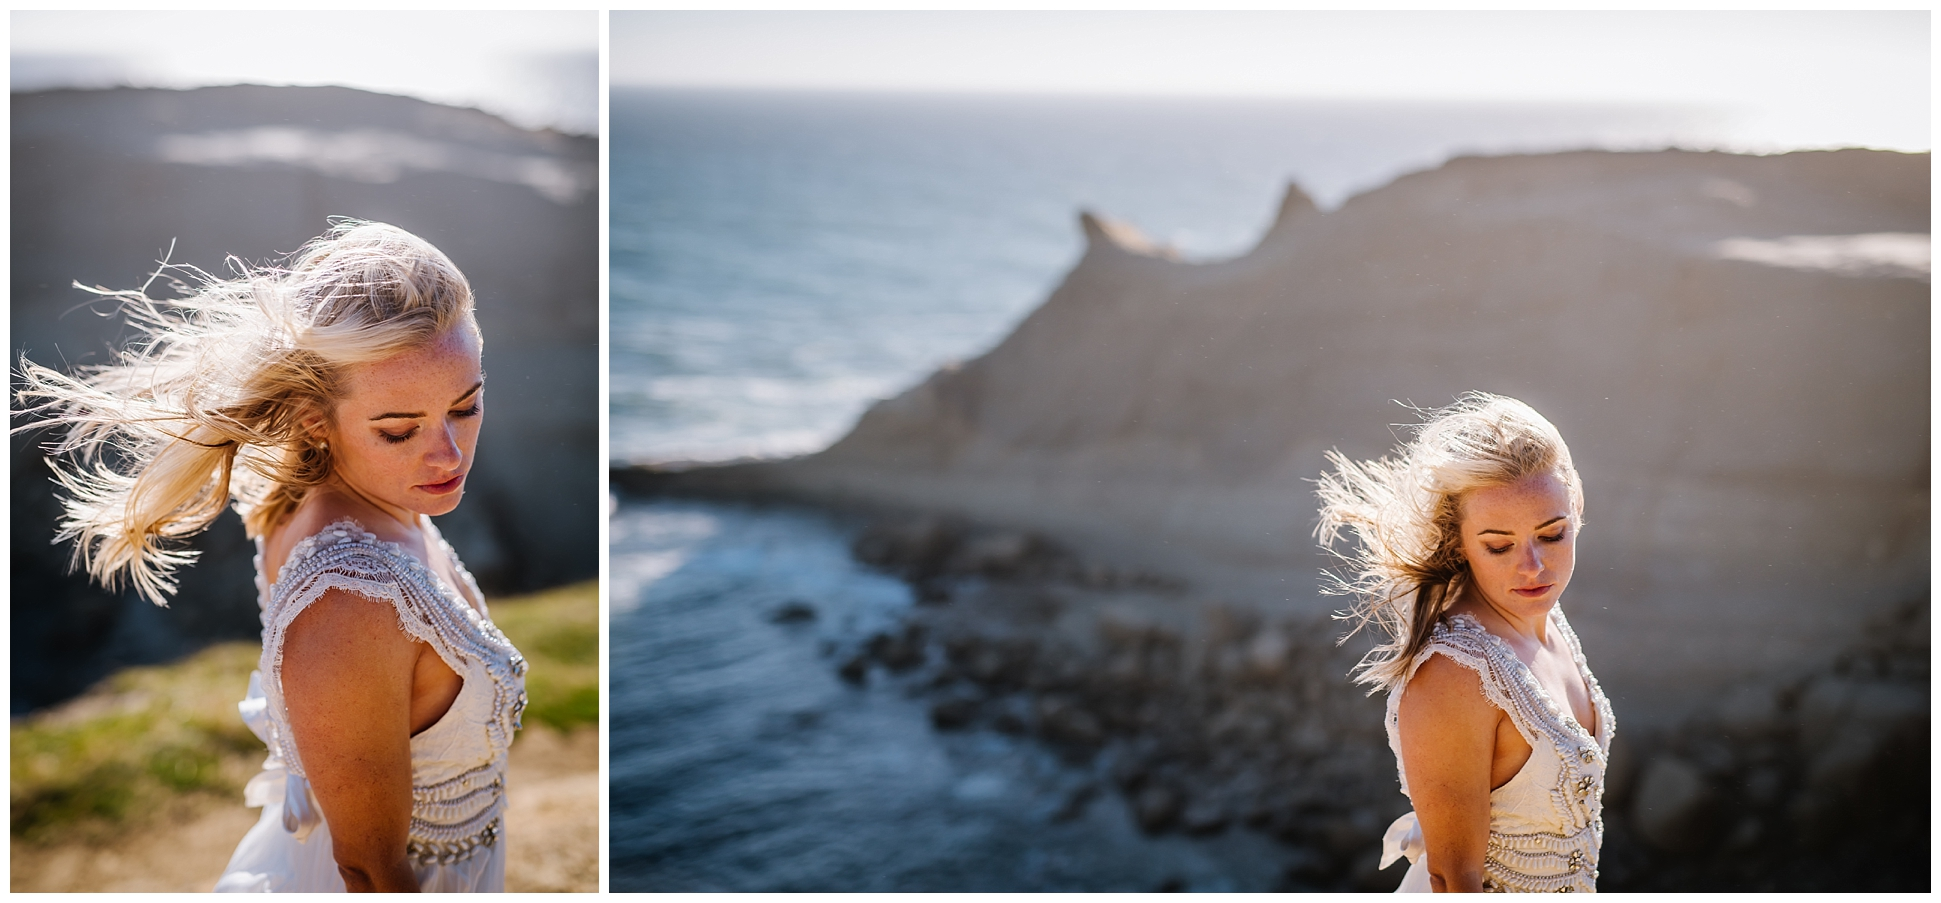 Cape-kiwanda-bridal-portrait-destination-wedding-photographer_0013.jpg